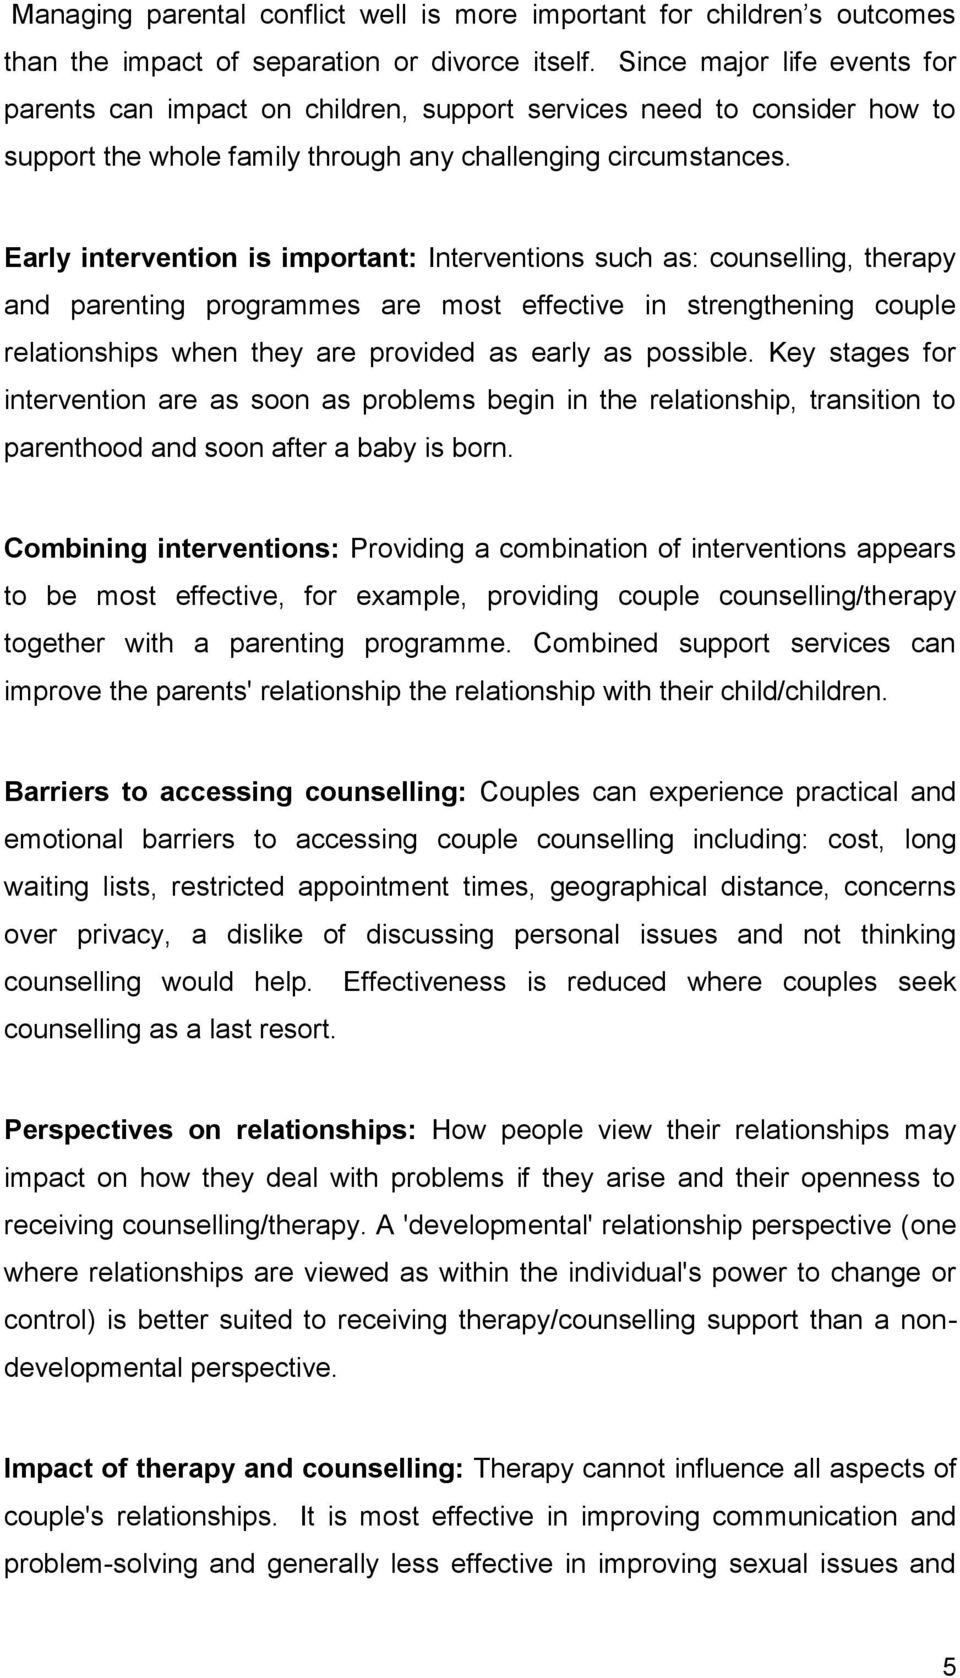 Early intervention is important: Interventions such as: counselling, therapy and parenting programmes are most effective in strengthening couple relationships when they are provided as early as